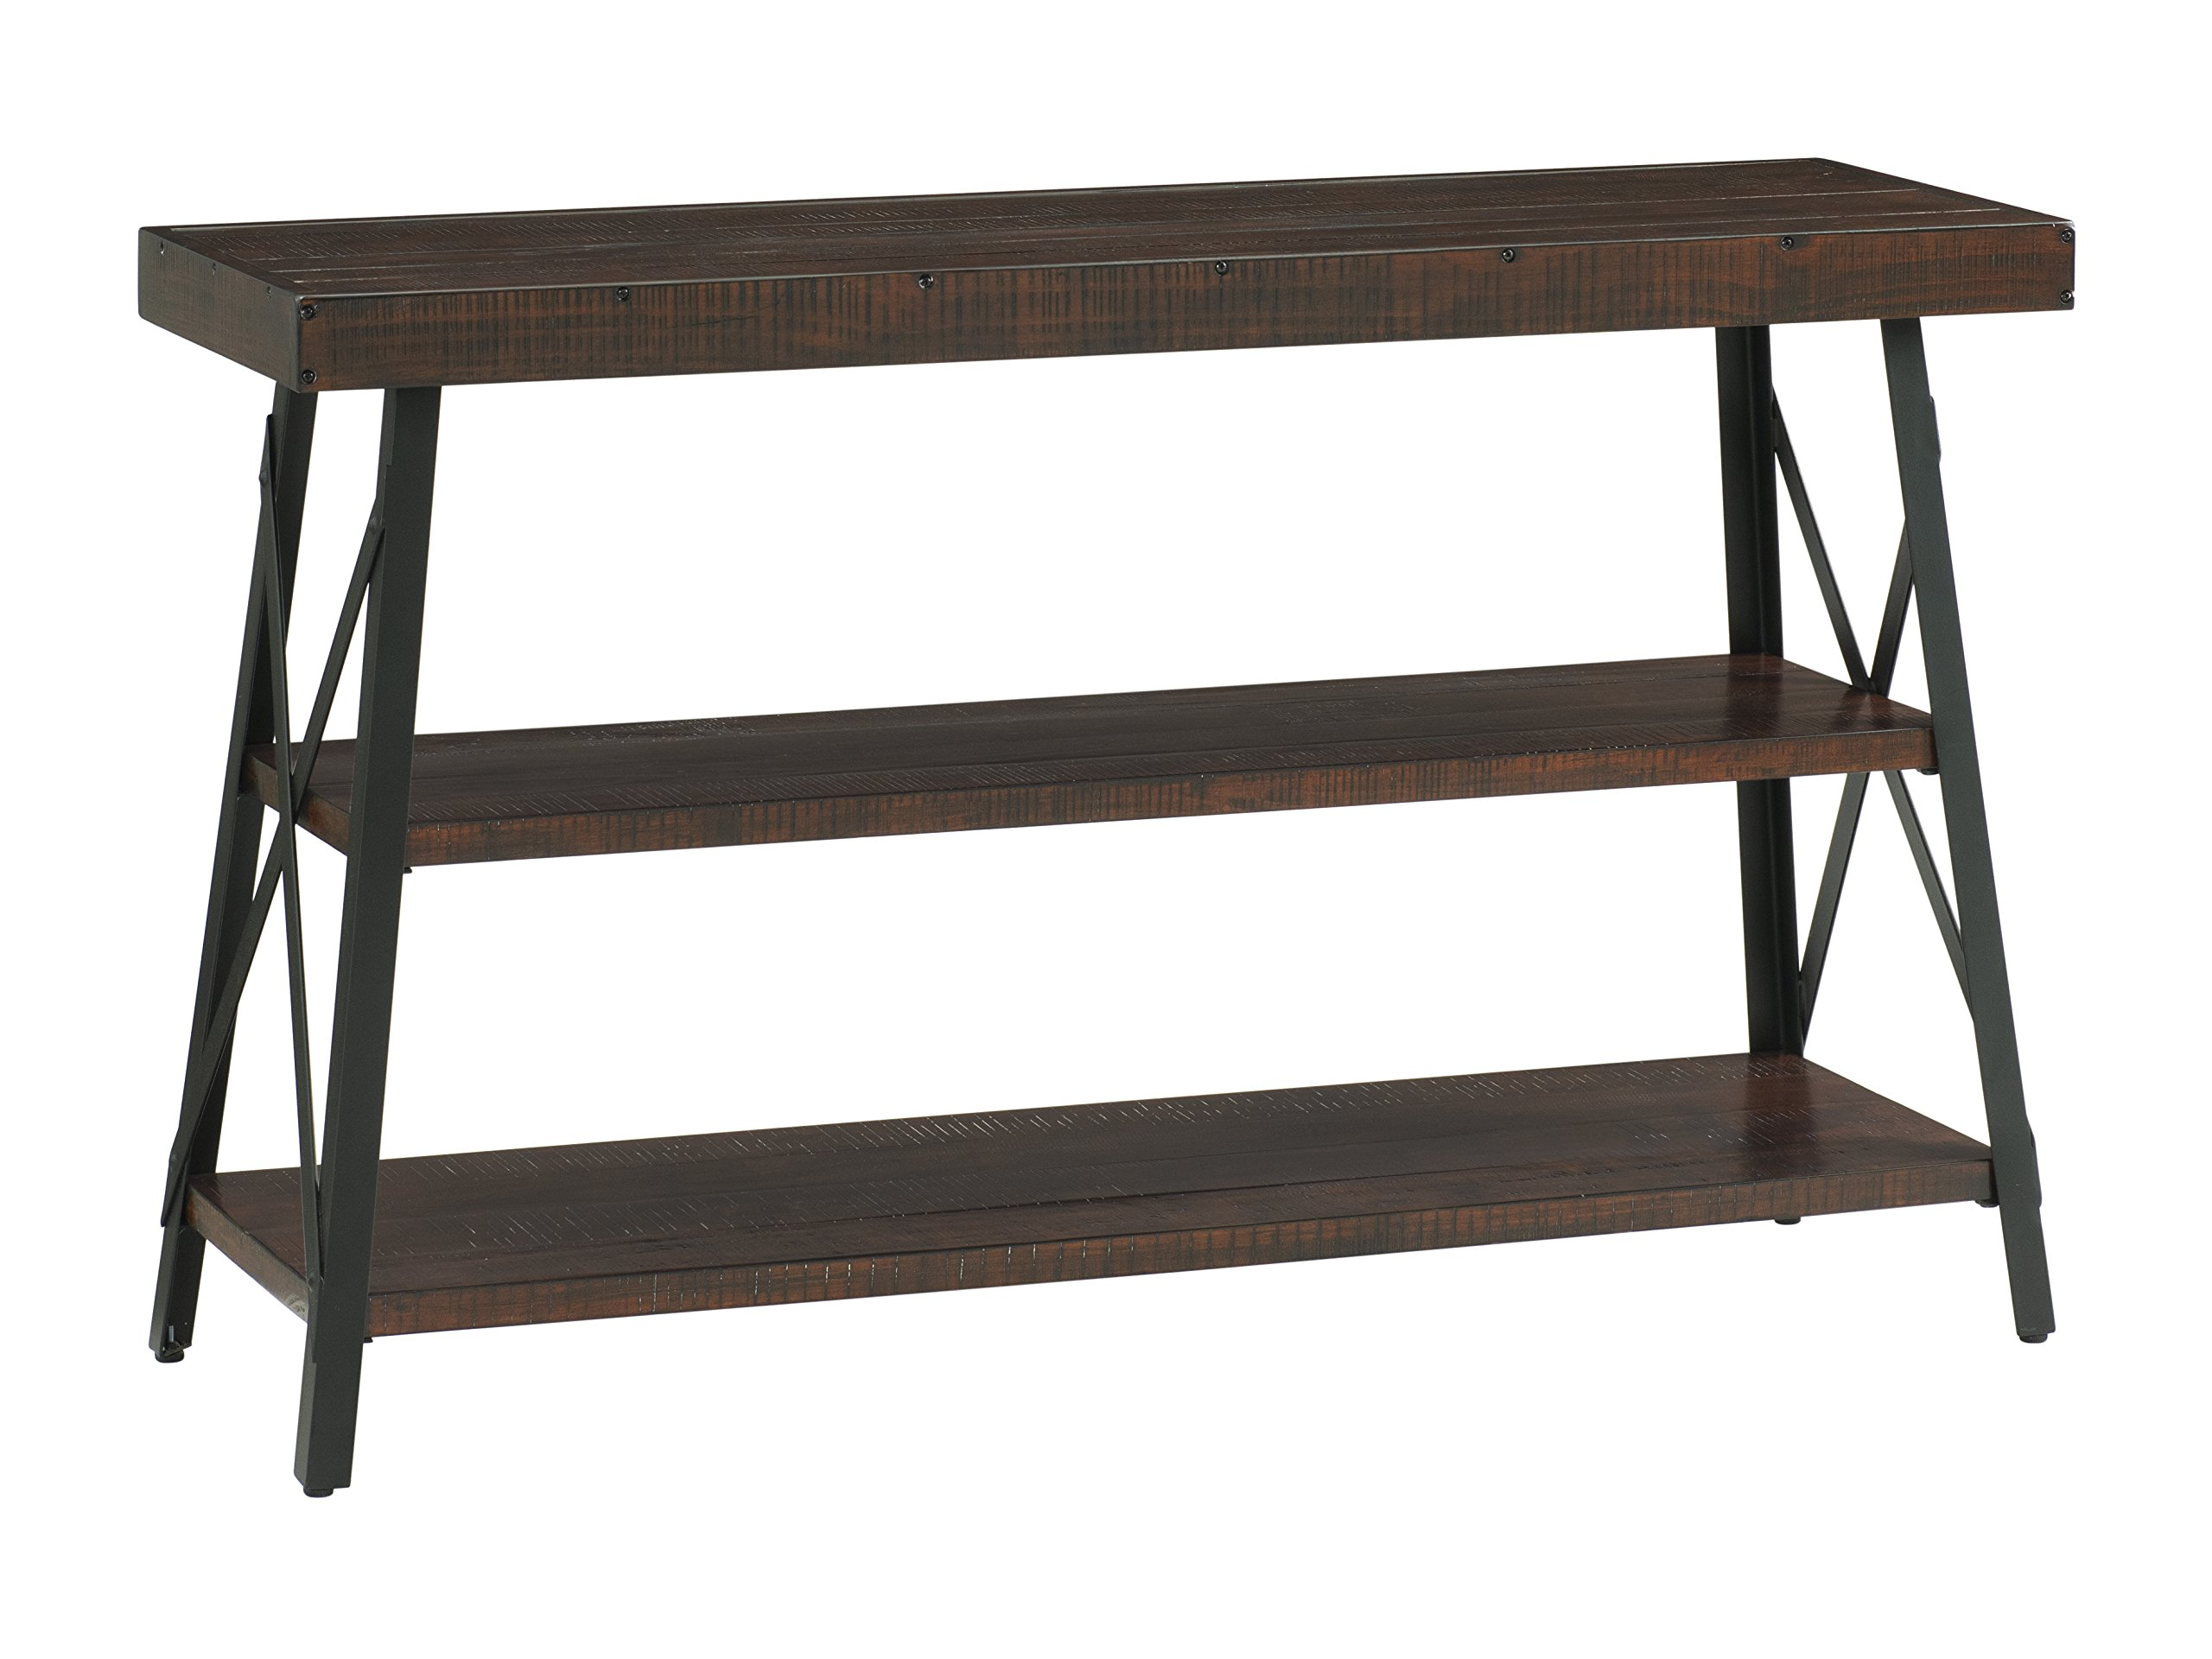 "Martin Svensson Home 890445 Xavier Sofa Console Table, Sumatra - Finish: Sumatra - blend of a deep rich Coffee Finish with a slight amount of white pumice hang up Crafted from solid wood - New Zealand pine with rough hewn saw marks Exposed rivets across the Top and Black Steel metal ""x"" cross on the end caps give it a distinct industrial and rustic look - living-room-furniture, living-room, console-tables - 810yGwulMvL -"